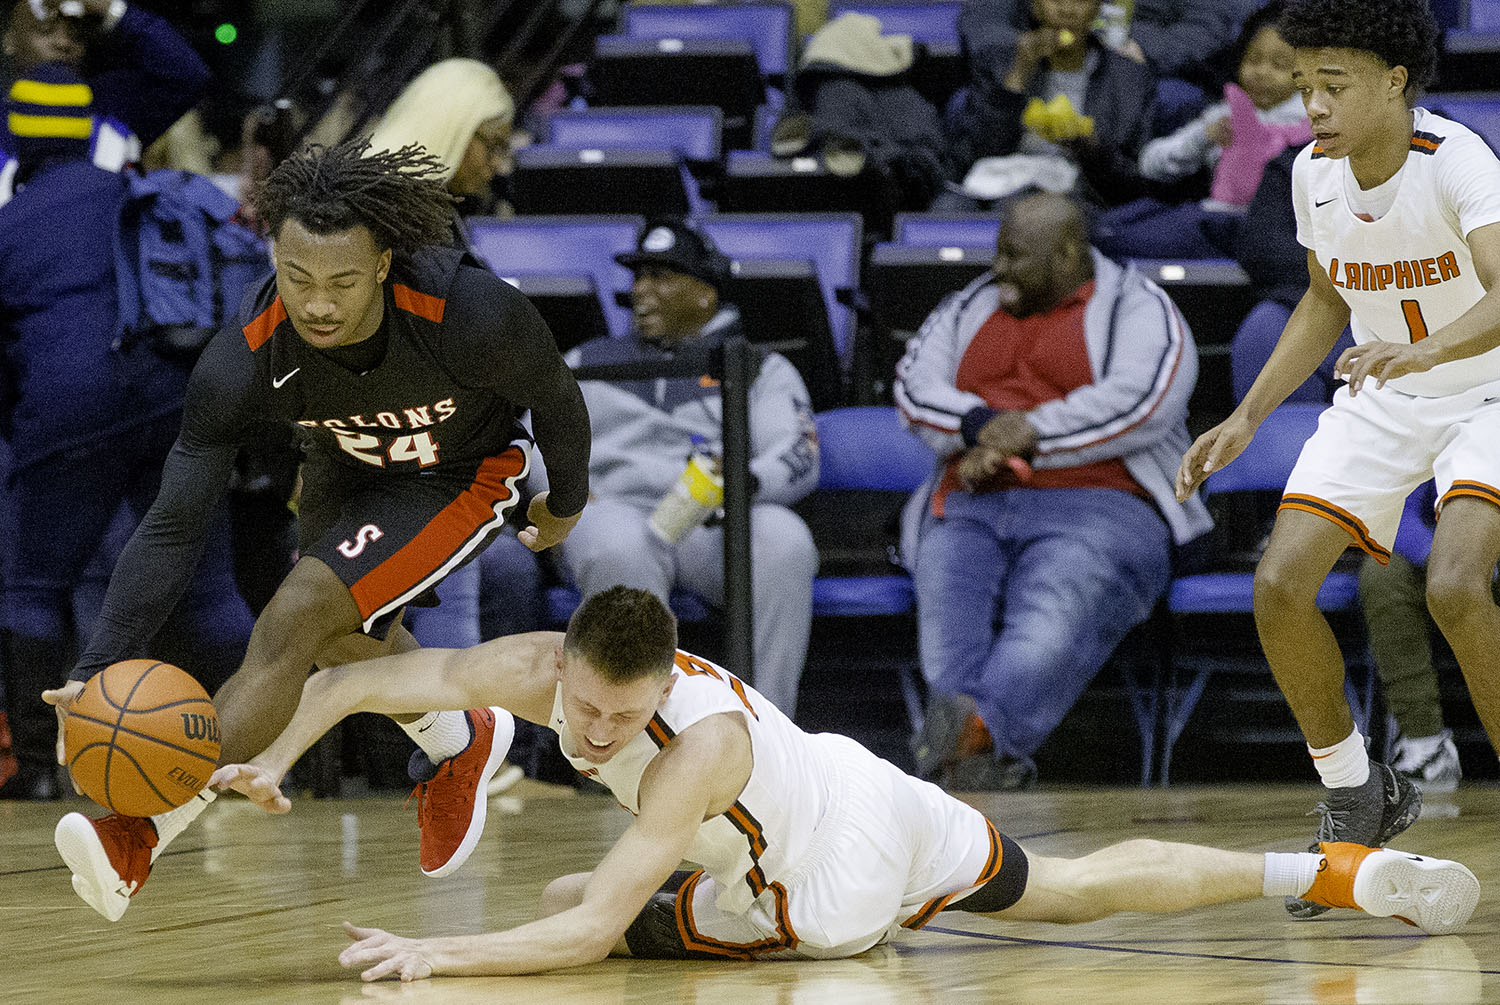 Springfield's Taryn Wallace beats Lanphier's Jaden Snodgrass to a loose ball during the Boys City Tournament at the Bank of Springfield Center Friday, Jan. 18, 2019.  [Ted Schurter/The State Journal-Register]